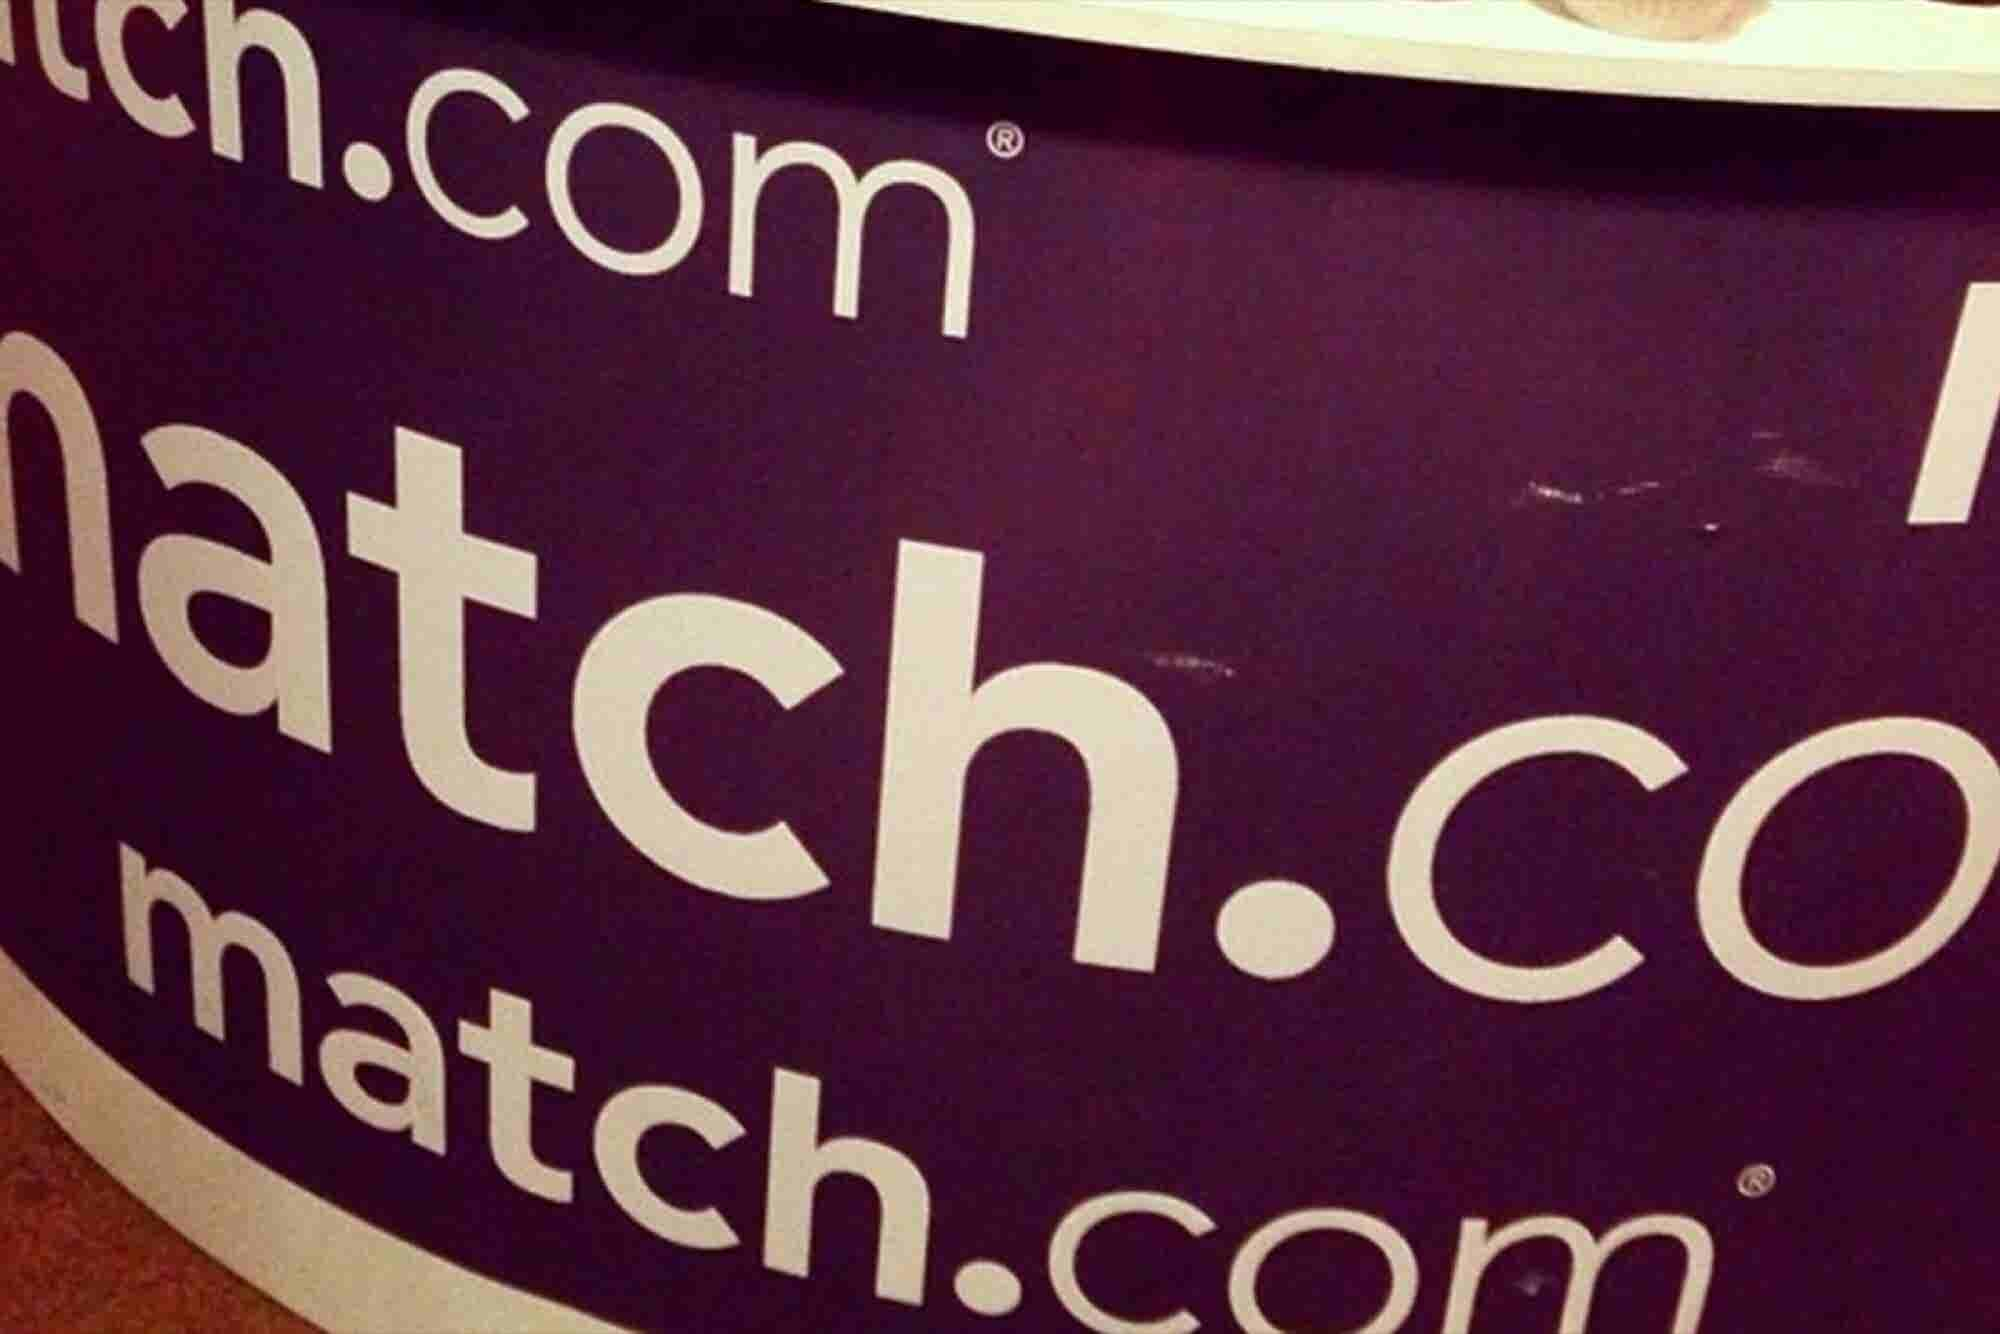 Match, Tinder to Go Public